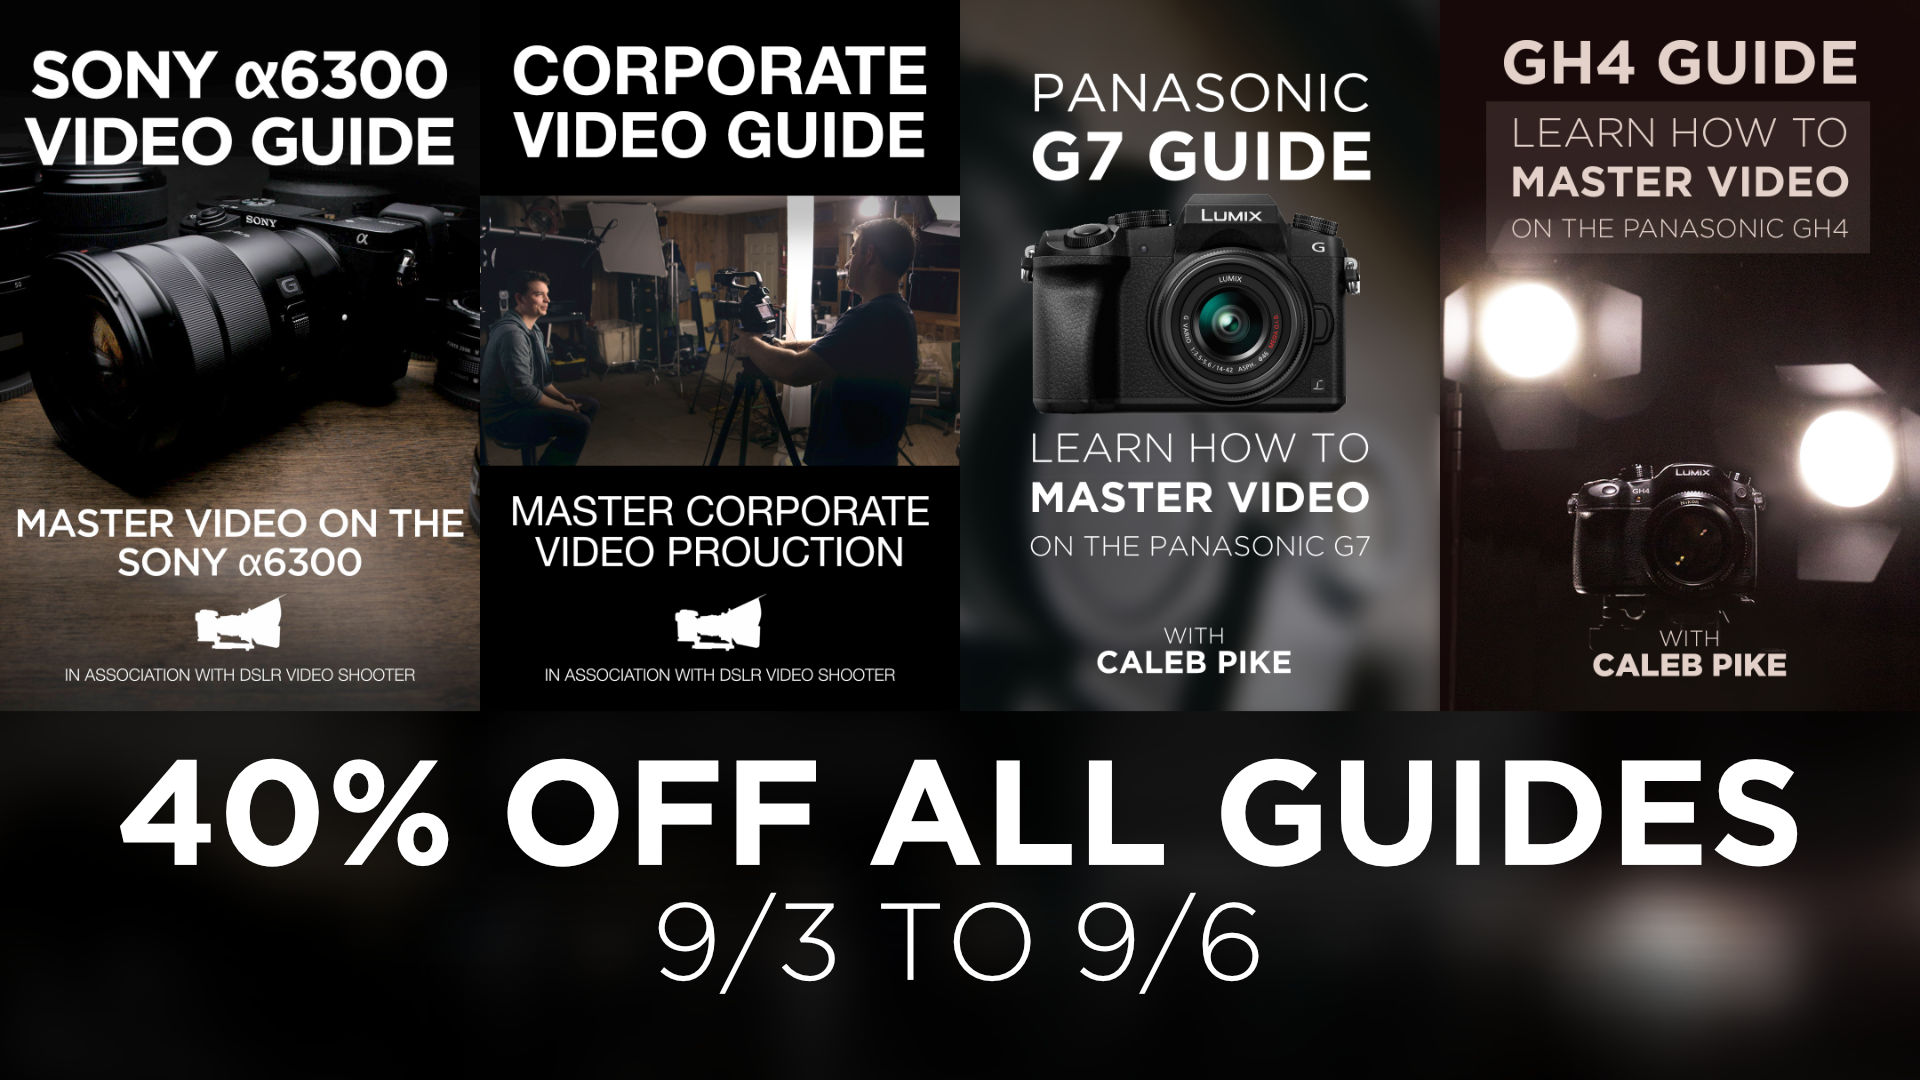 40% Labor Day Sale On All Guides!